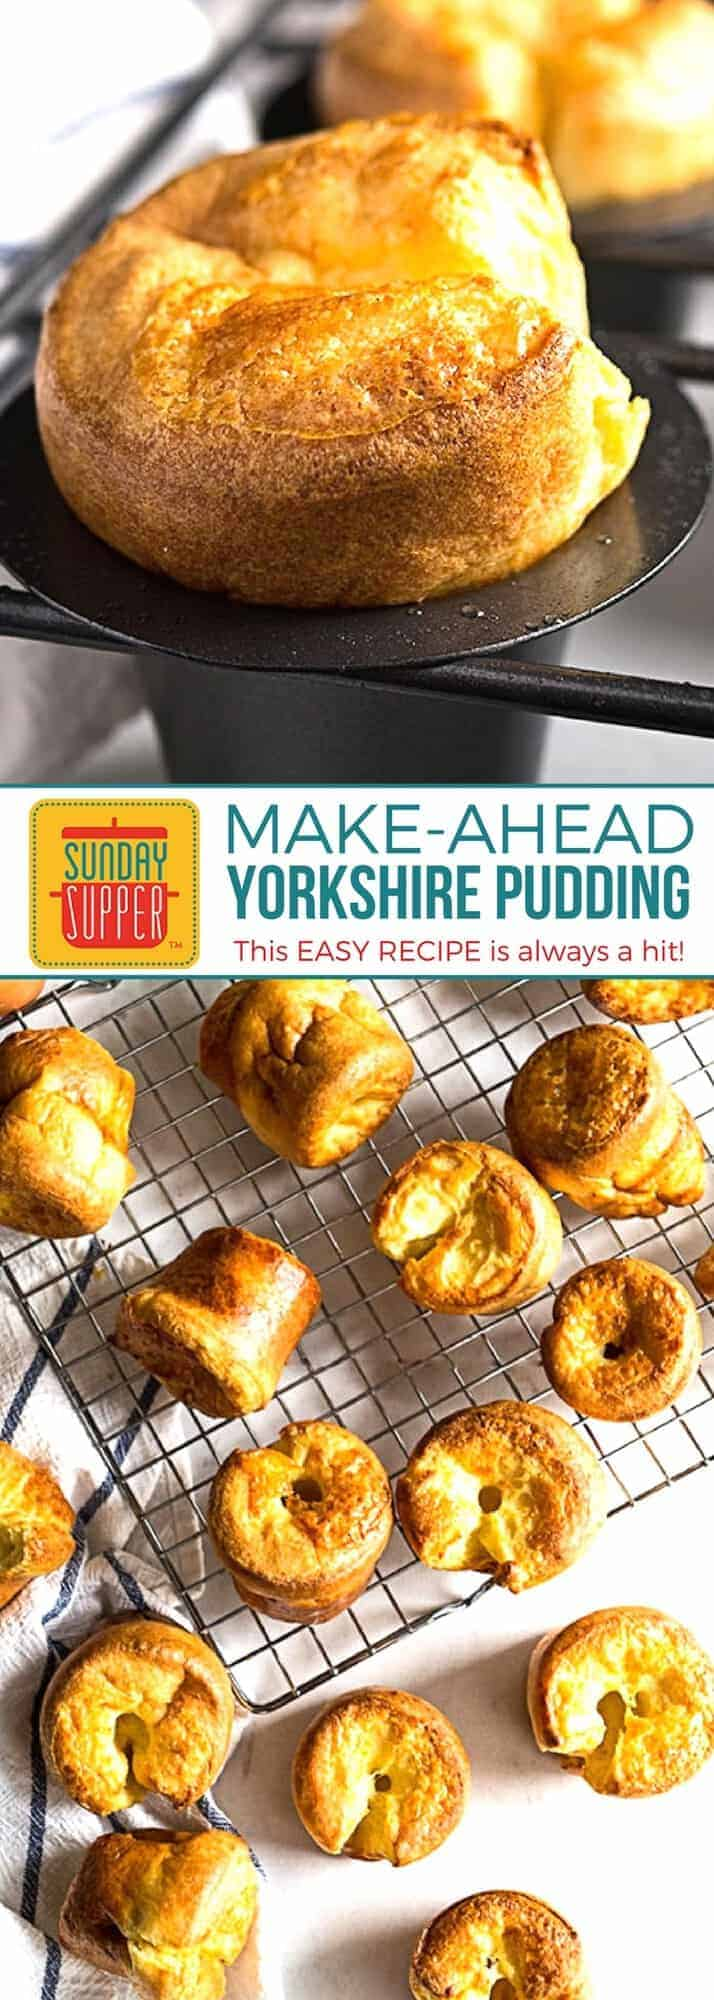 This EASY Yorkshire Pudding Recipe is a MUST ADD to your make ahead dinner party recipes list. This traditional English food is always a hit with guests, tailor-made to accompany stew or any dish with a tasty sauce or gravy. They work great for brunch too with your favorite jam or some clotted cream. Deliciously fluffy with a crispy outside, this egg-y Yorkshire Pudding Recipe is the perfect addition to your holiday table. #SundaySupper #ComfortFoodRecipes #MakeAheadRecipes #HolidayRecipes